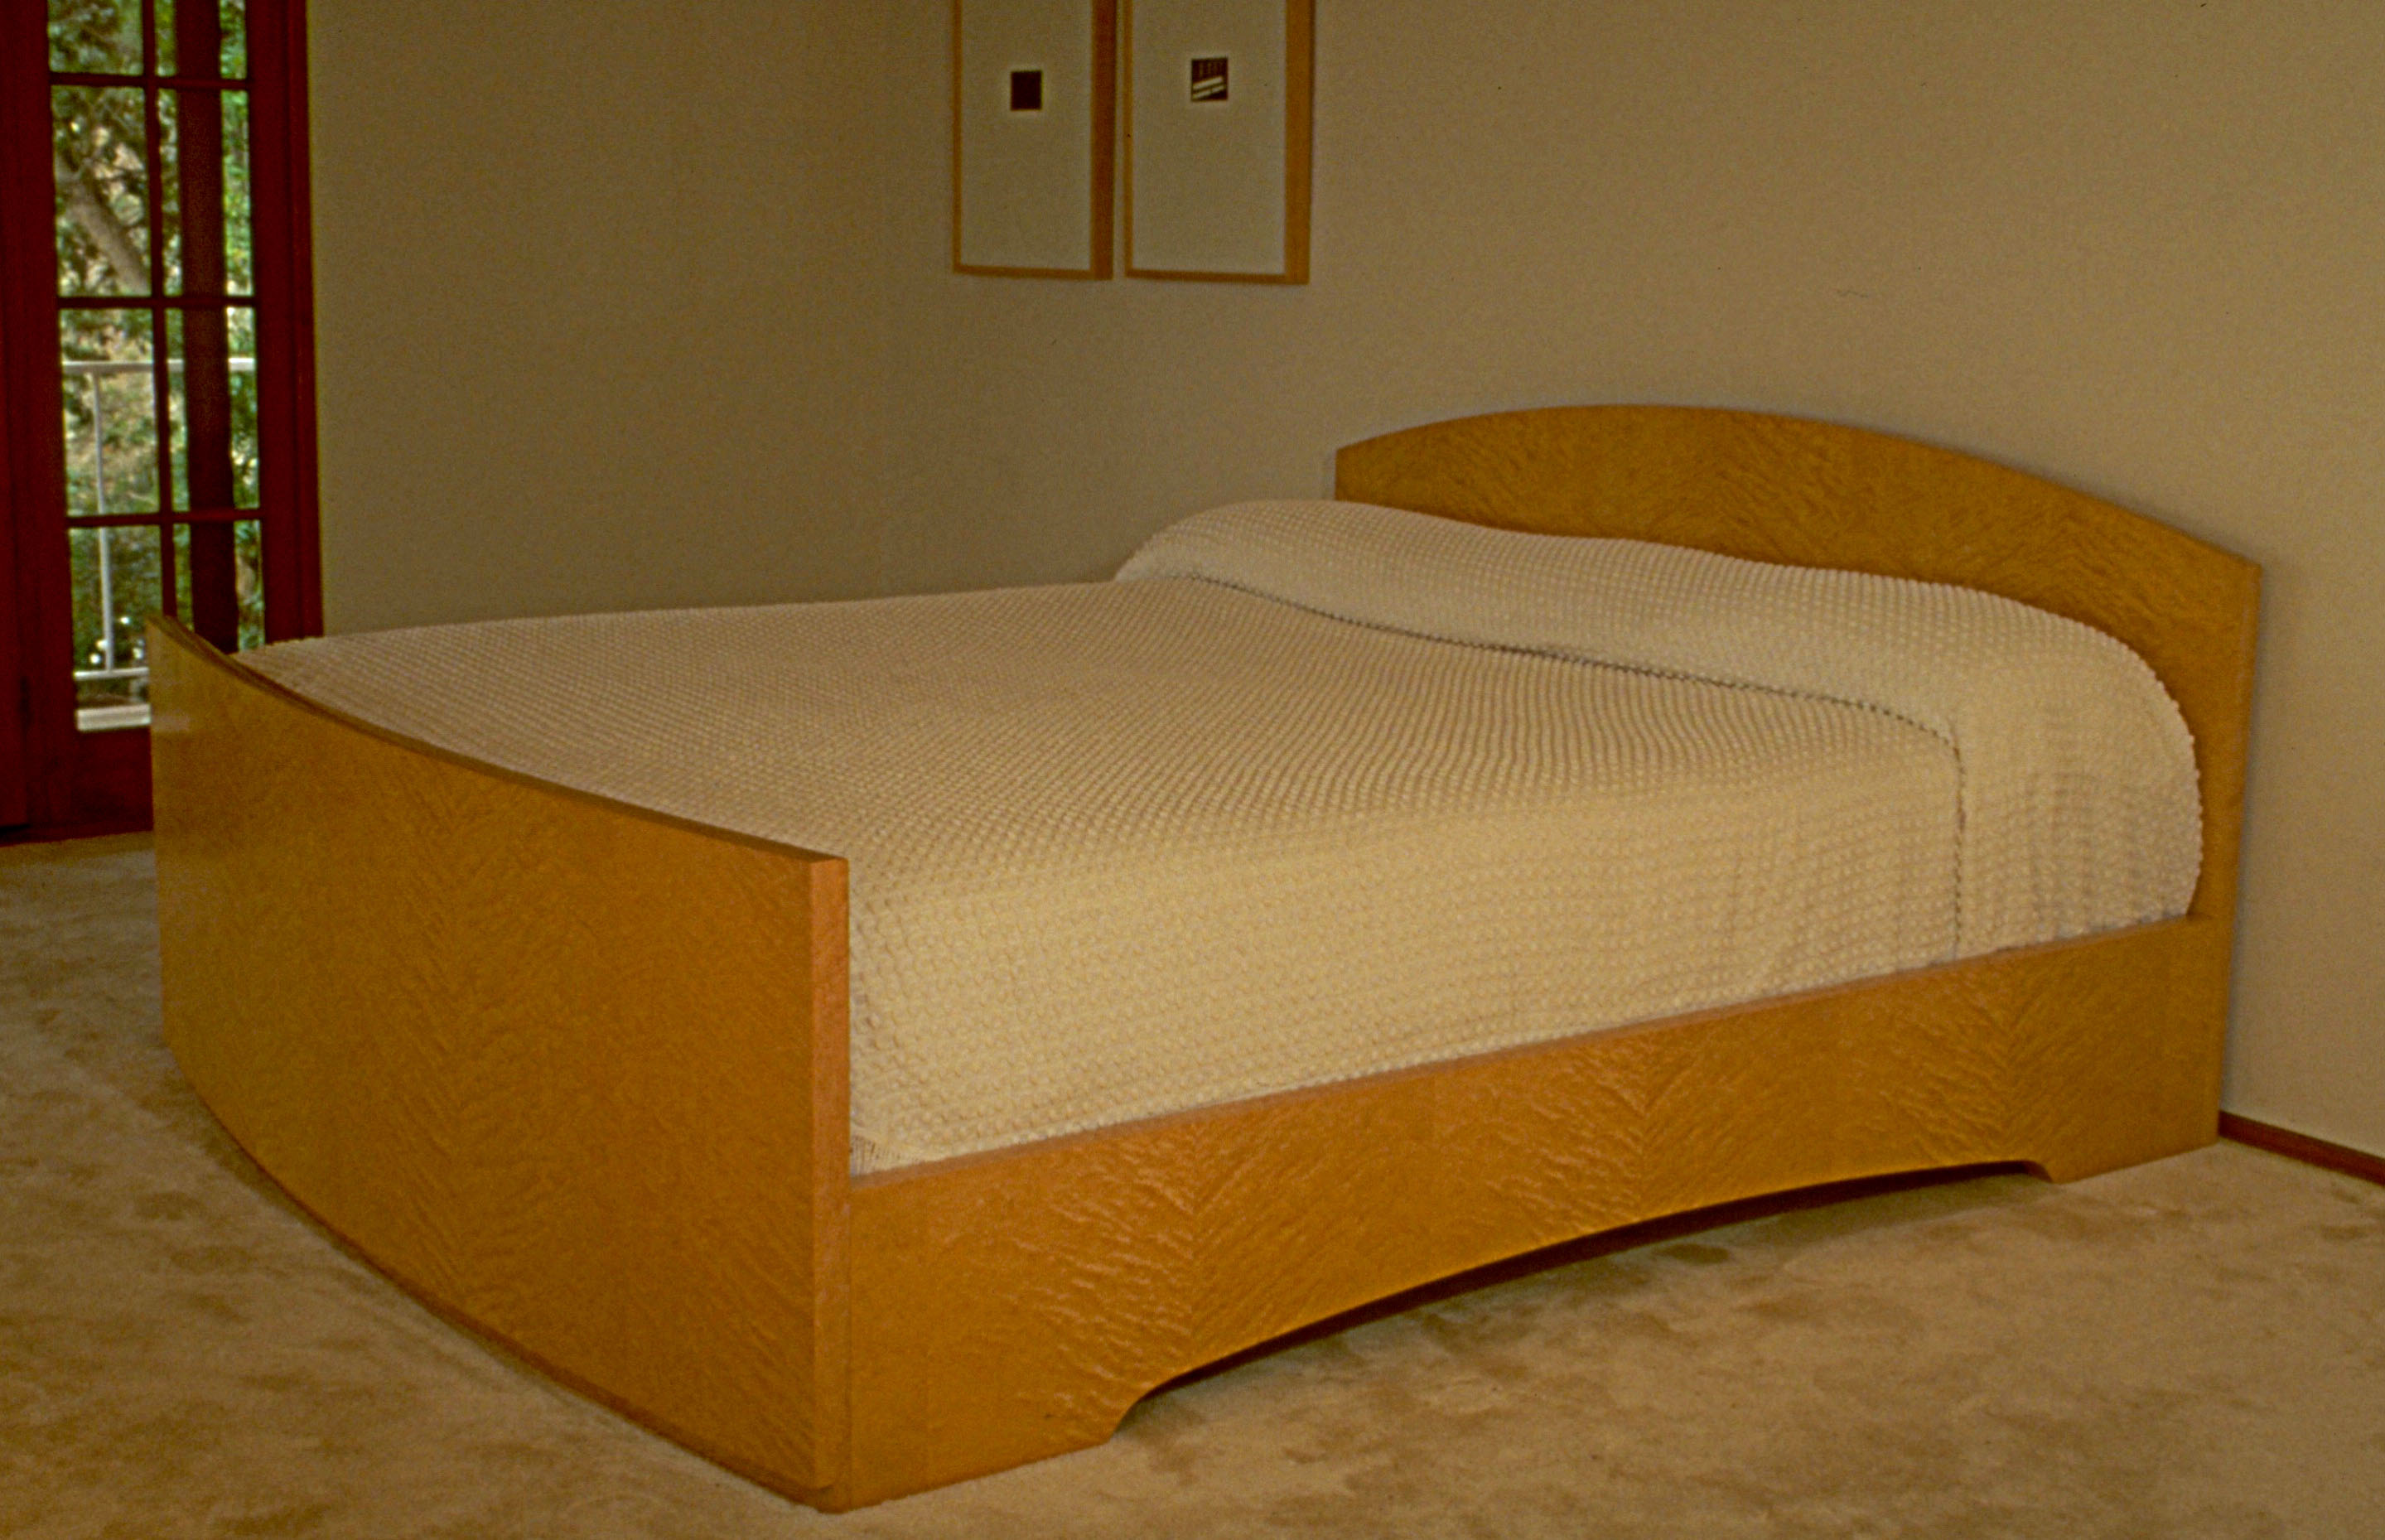 73. Birdseye Maple Bed - Paul Schürch - Veneer Artist